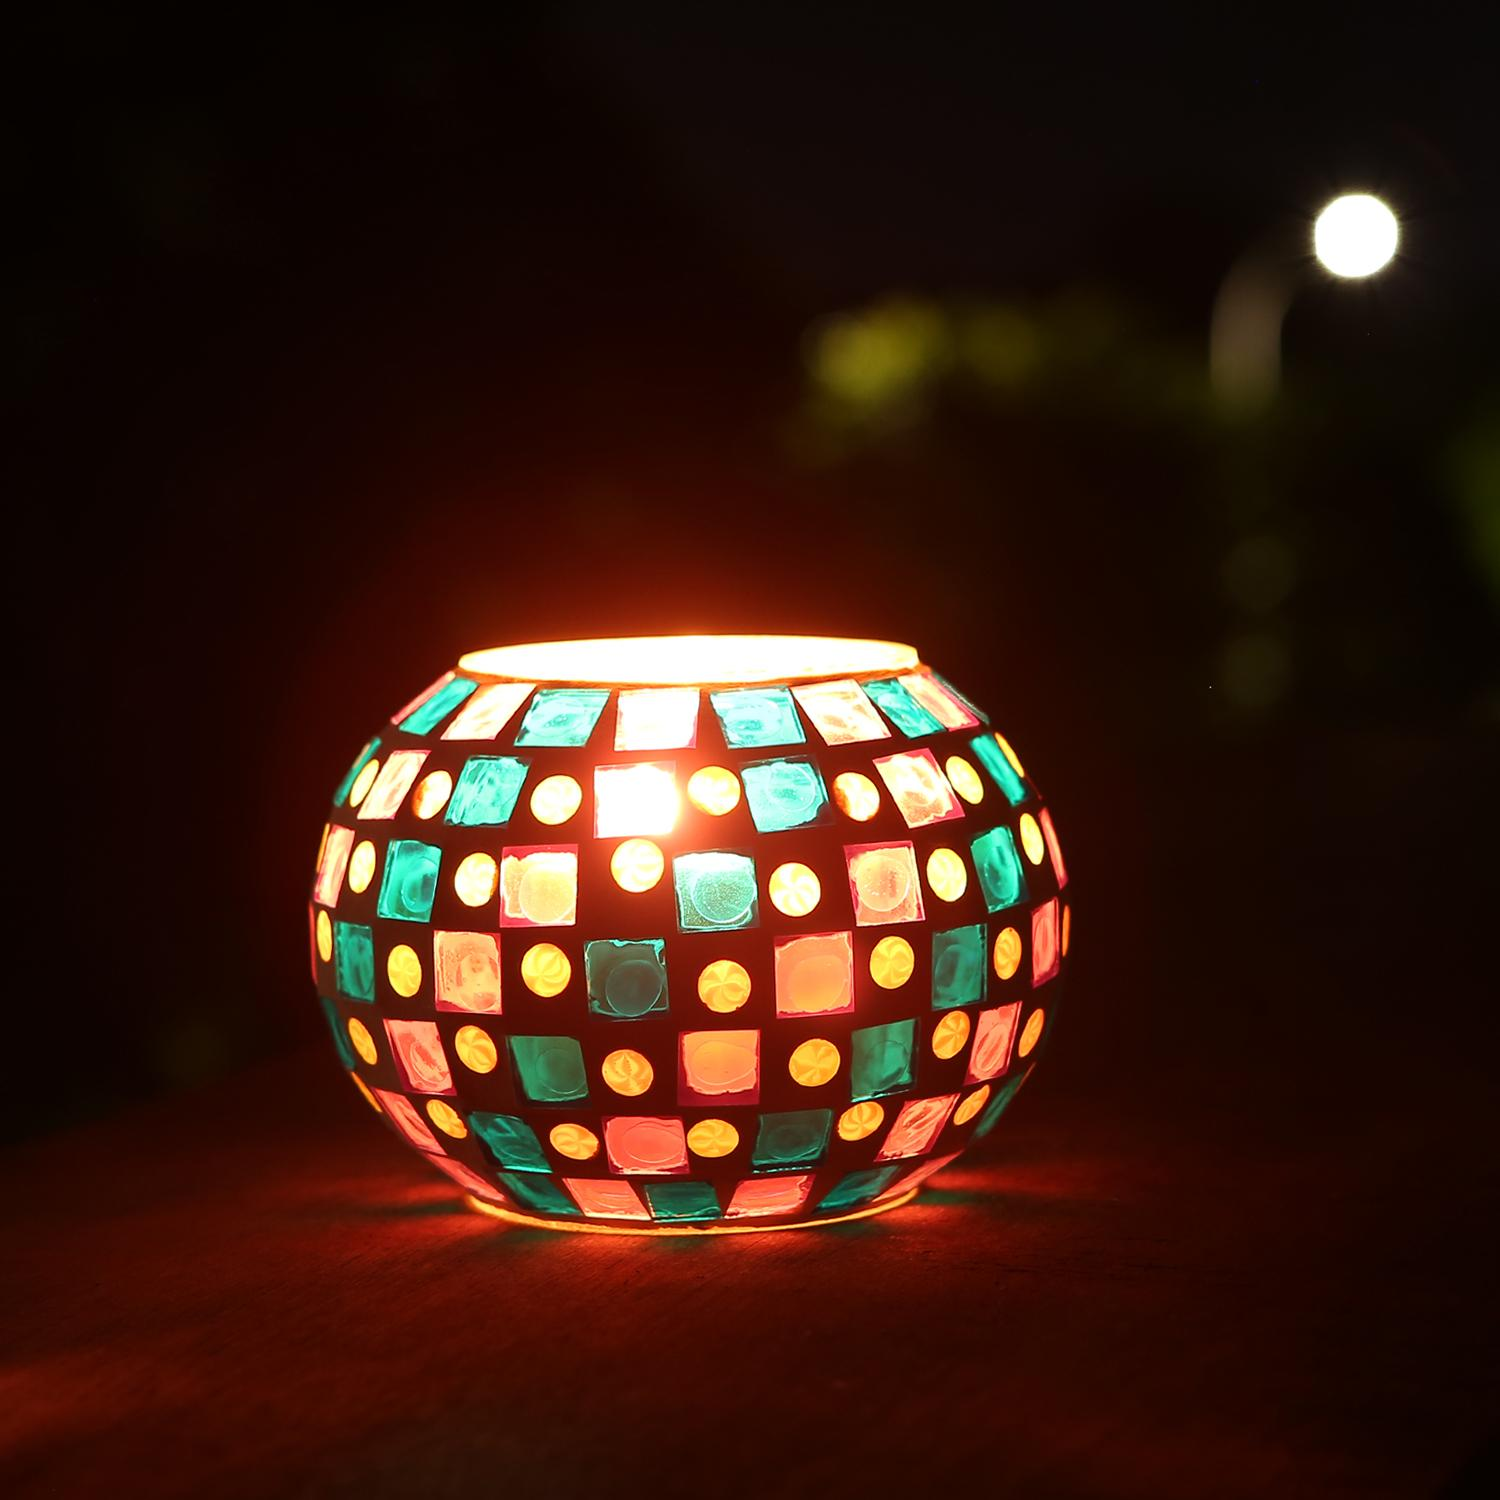 Glass Lamp Bowl Magicnight Color Changing Mosaic Solar Table Light Glass Bowl Small Disco Globe Ball Night Lamp For Garden Patio Porch